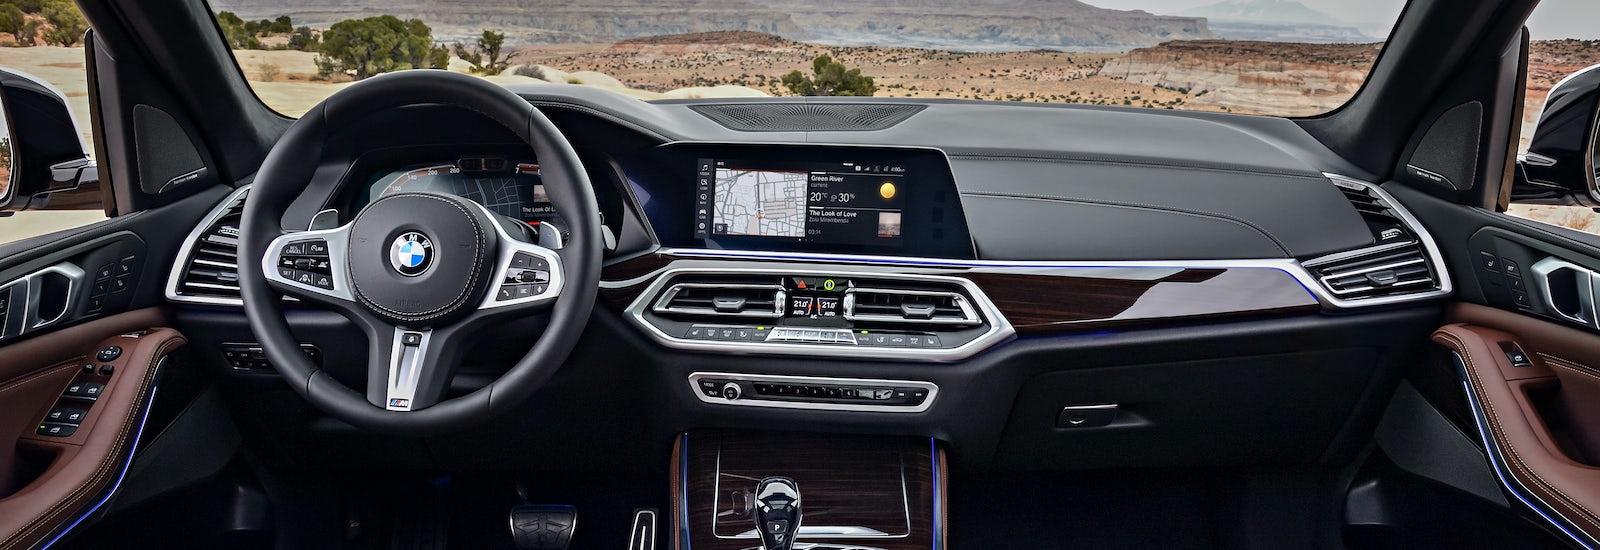 2018 bmw x5 and x5m price specs and release date carwow. Black Bedroom Furniture Sets. Home Design Ideas